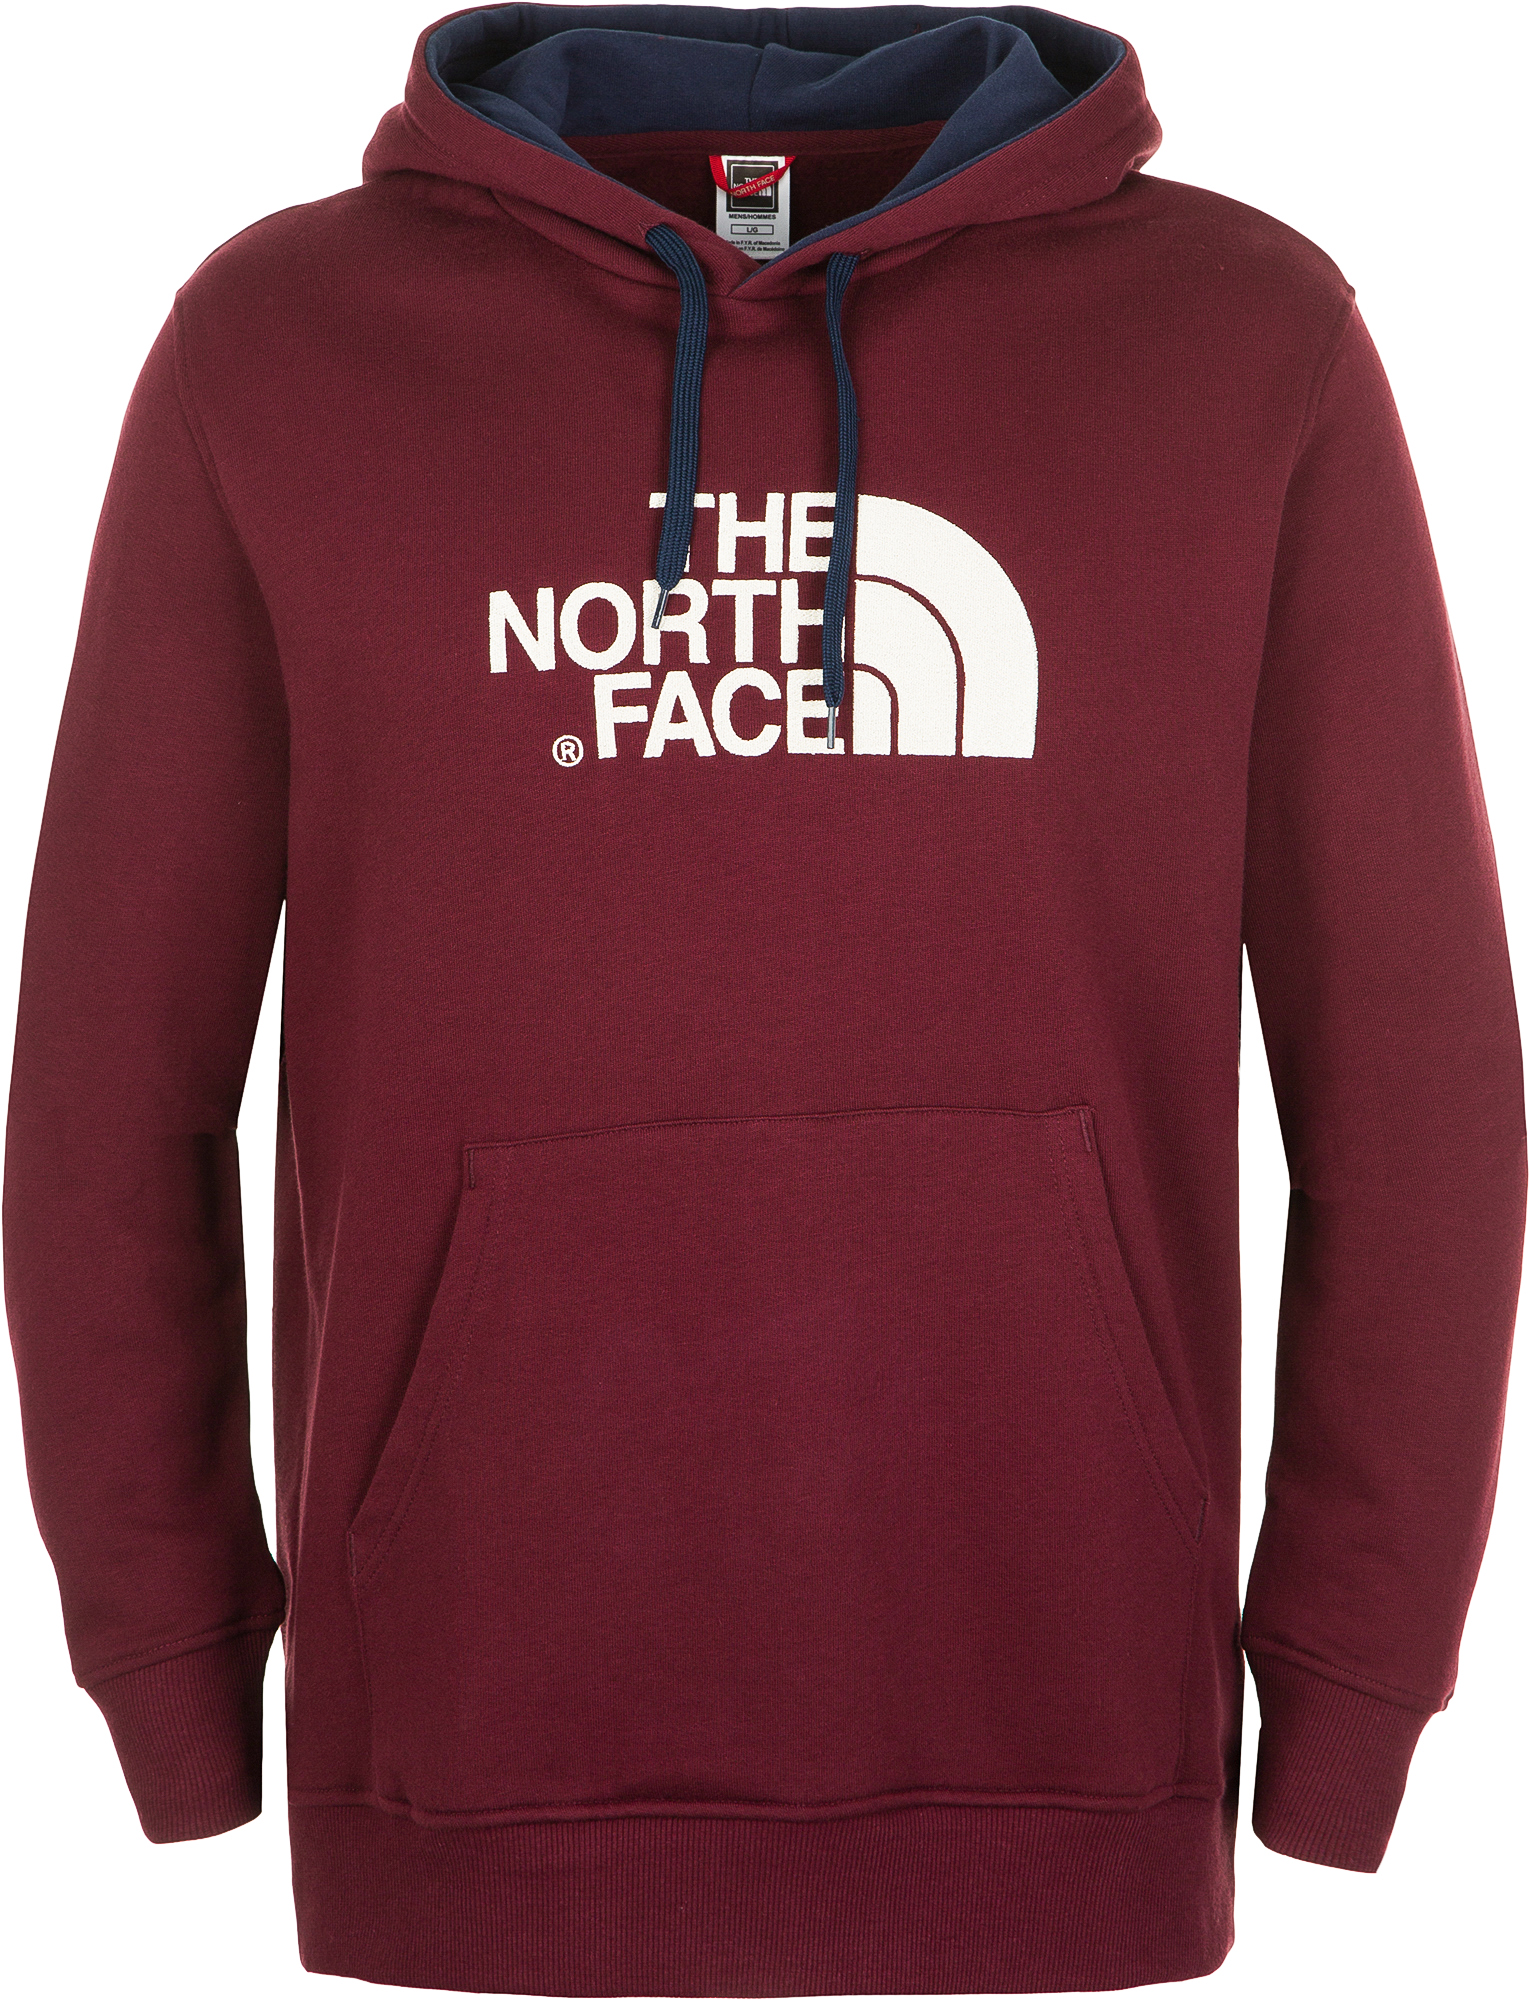 цена на The North Face Худи мужская The North Face Drew Peak, размер 46